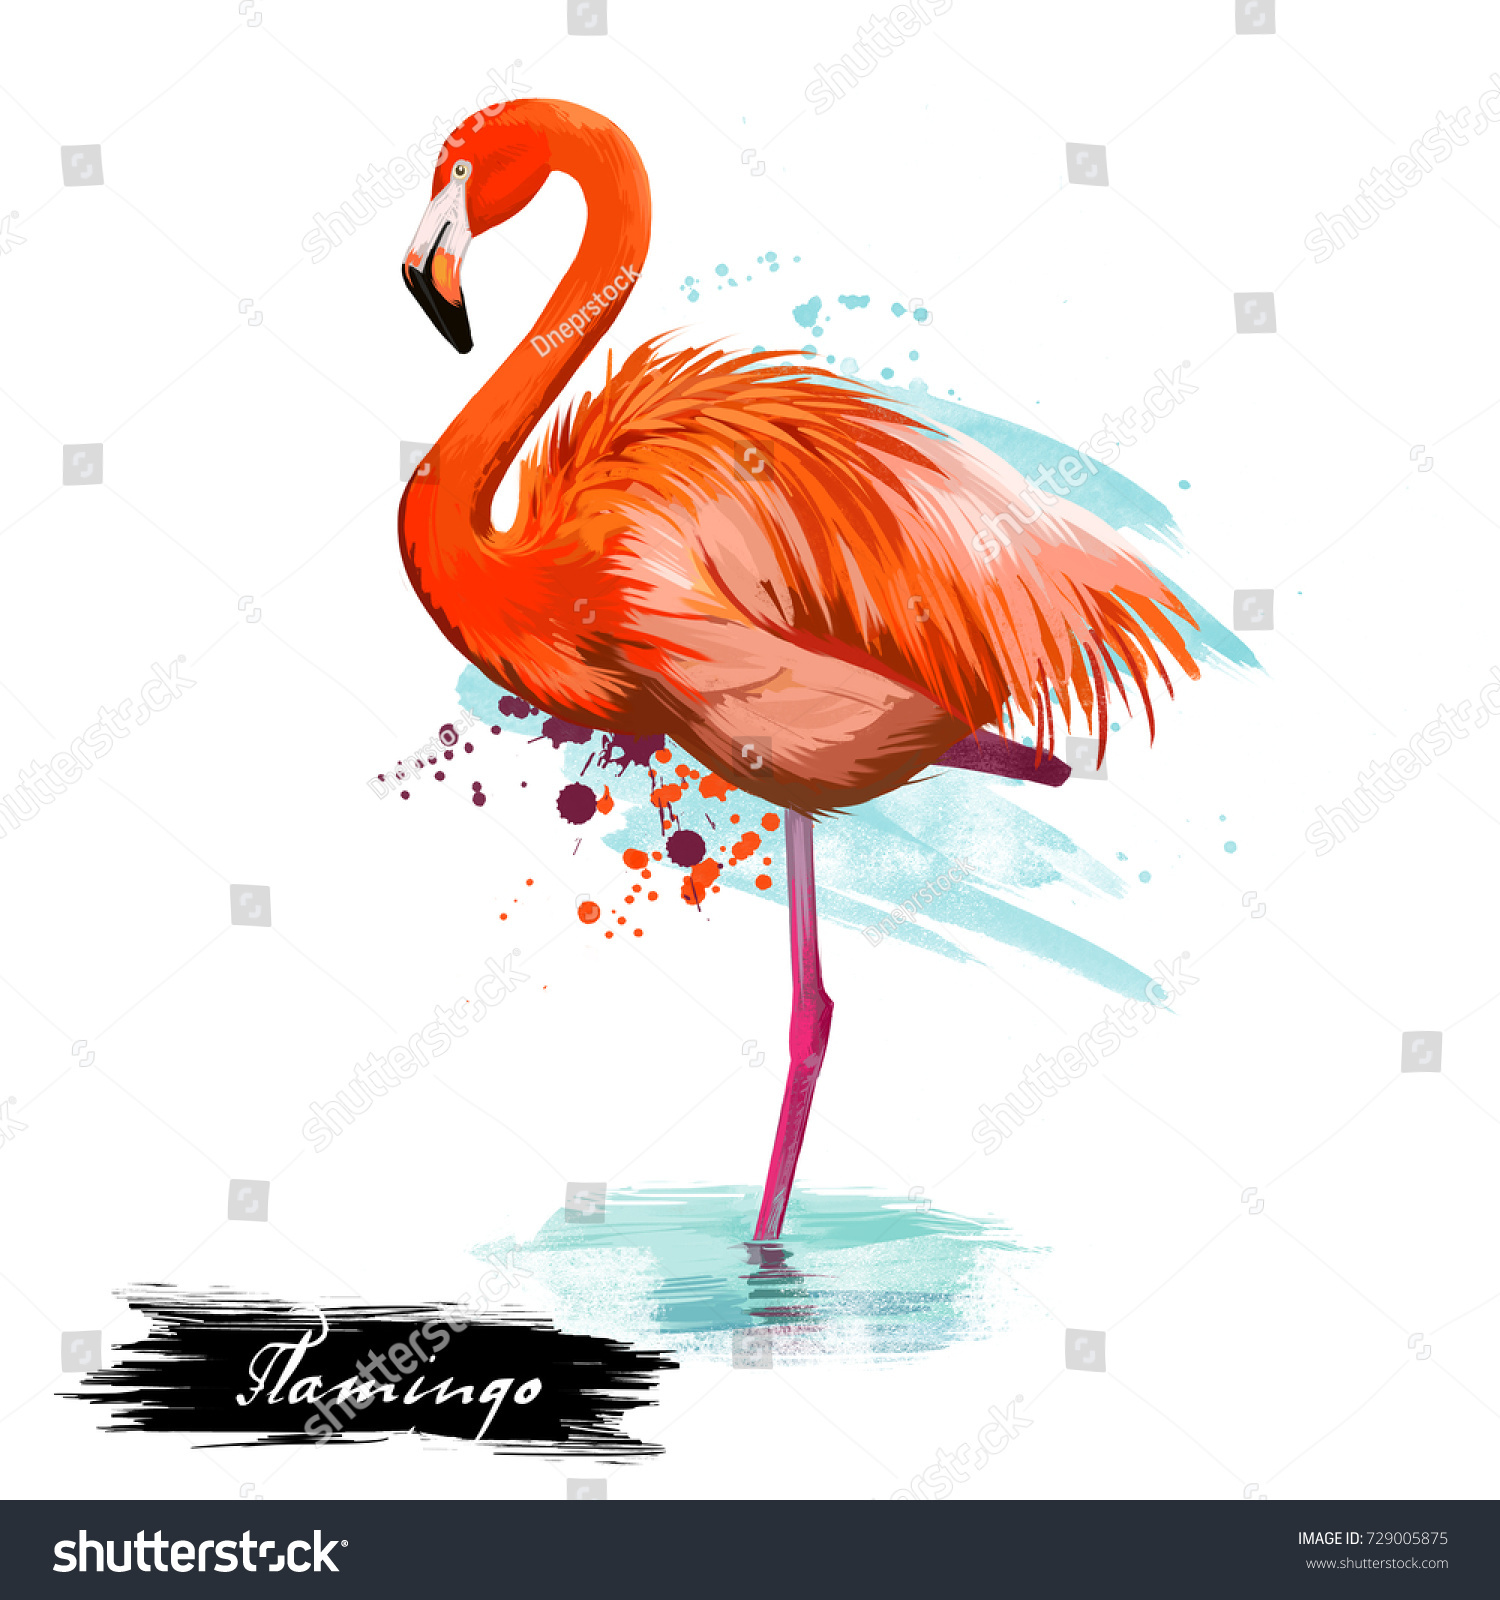 Flamingo Type Wading Bird Digital Art Stock Illustration 729005875